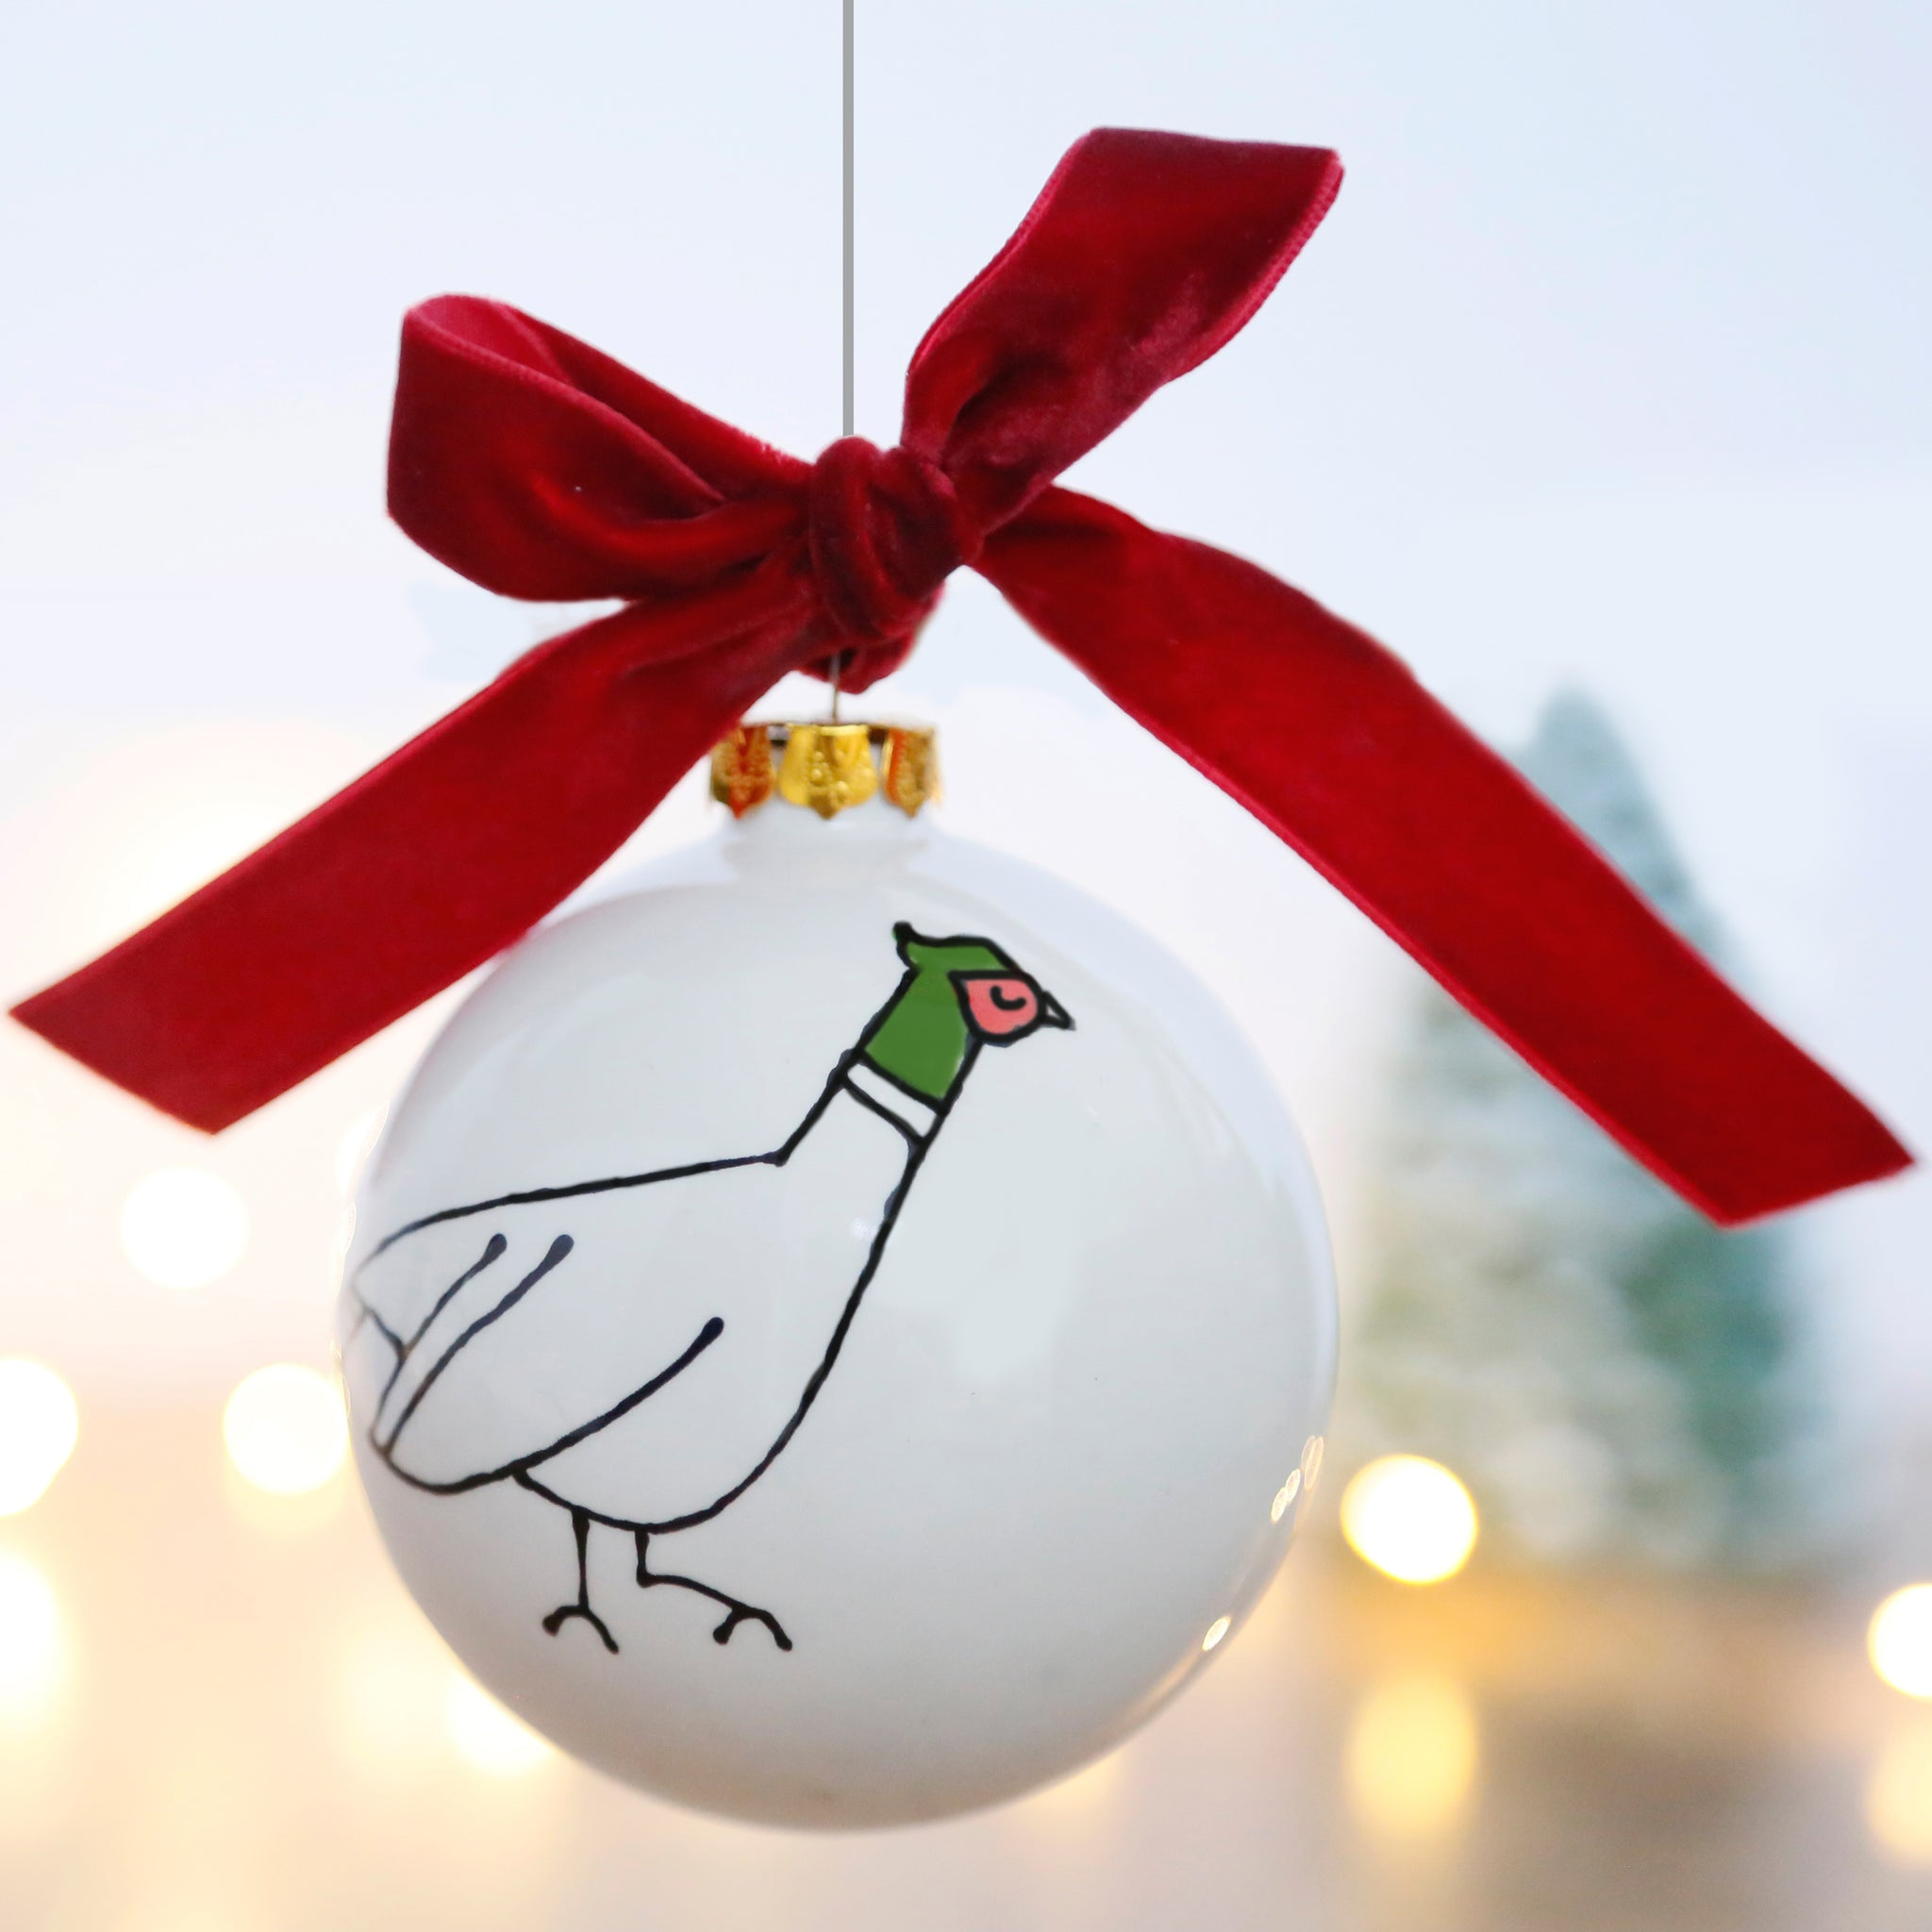 Christmas Bauble with a Classic County Pheasant Design